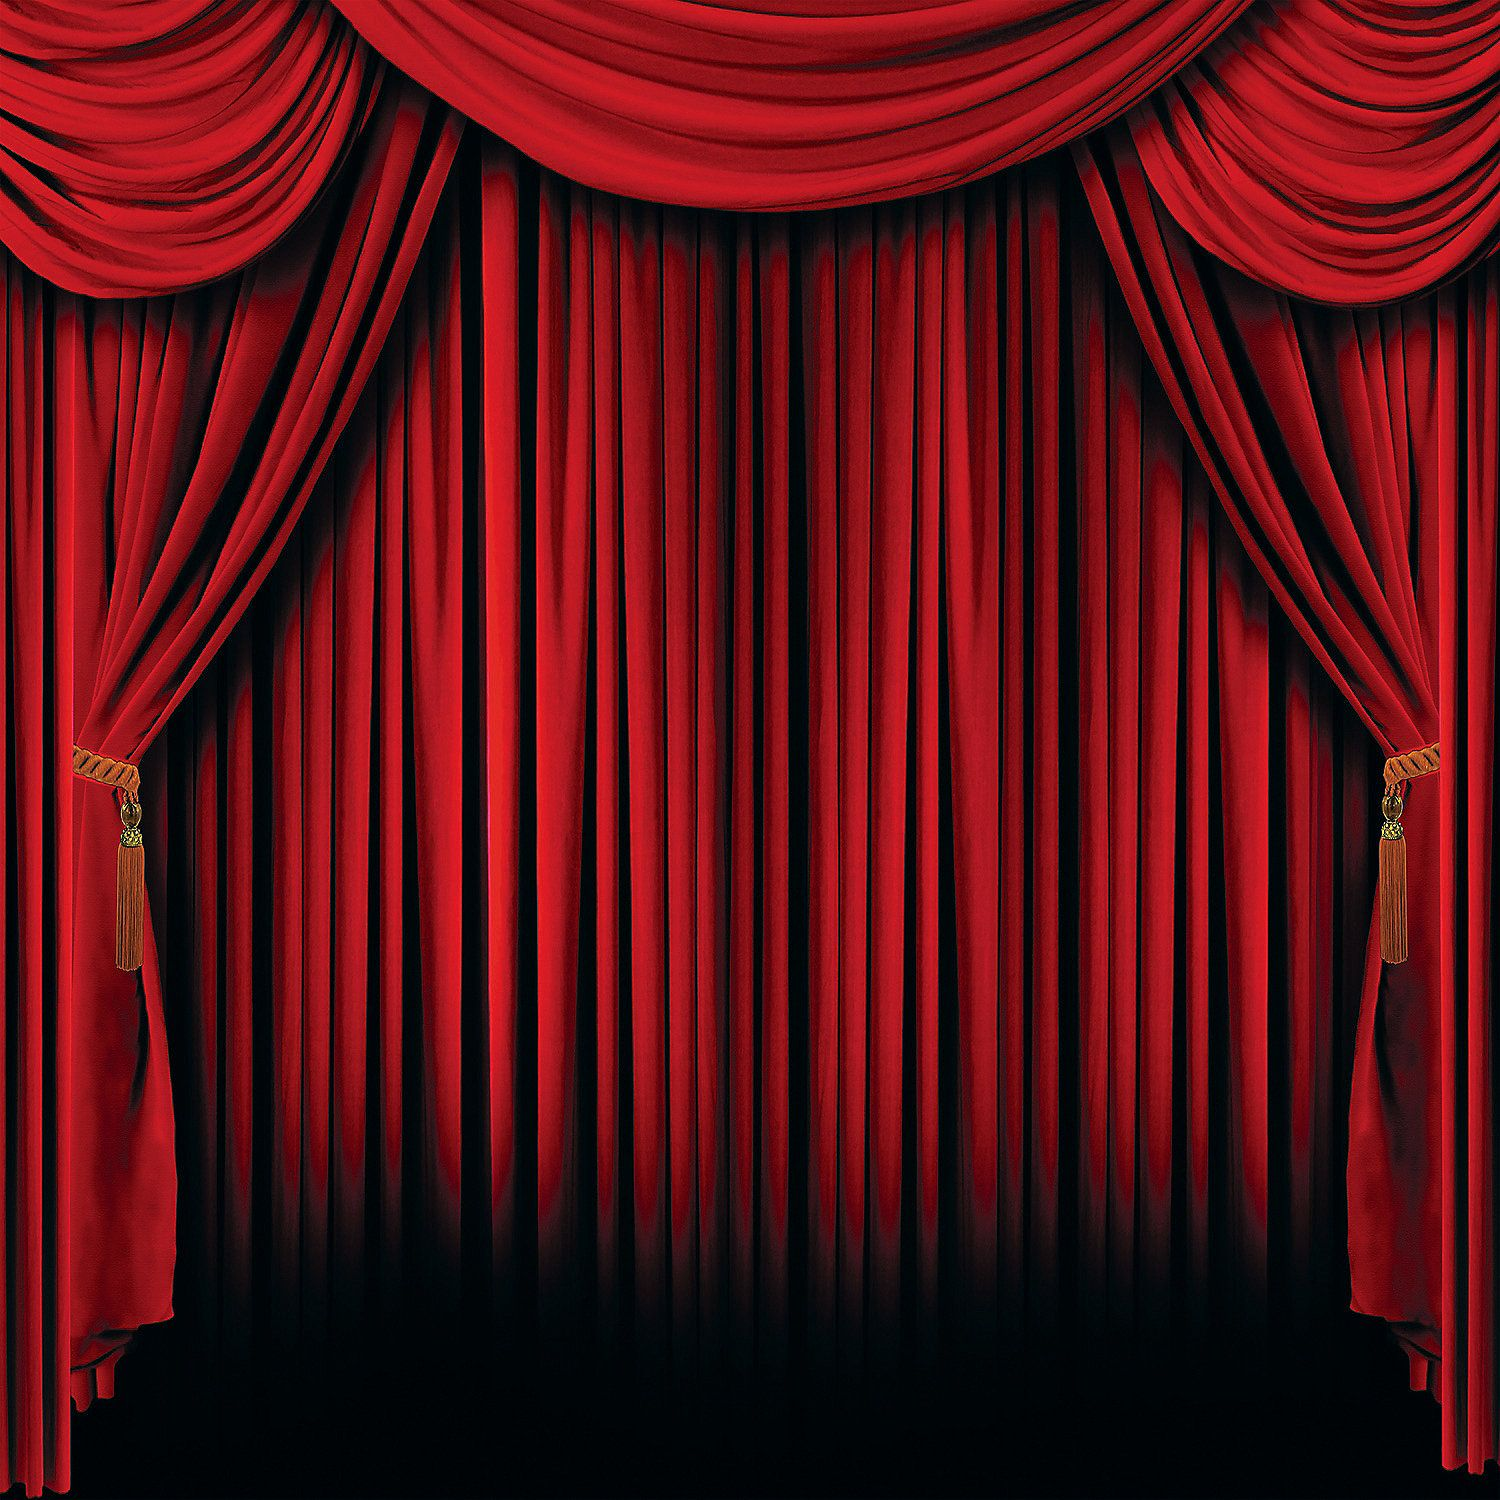 Blue curtain backdrop - Red Curtain Backdrop Banner Orientaltrading Com 10 00 Great For A Picture Back Drop